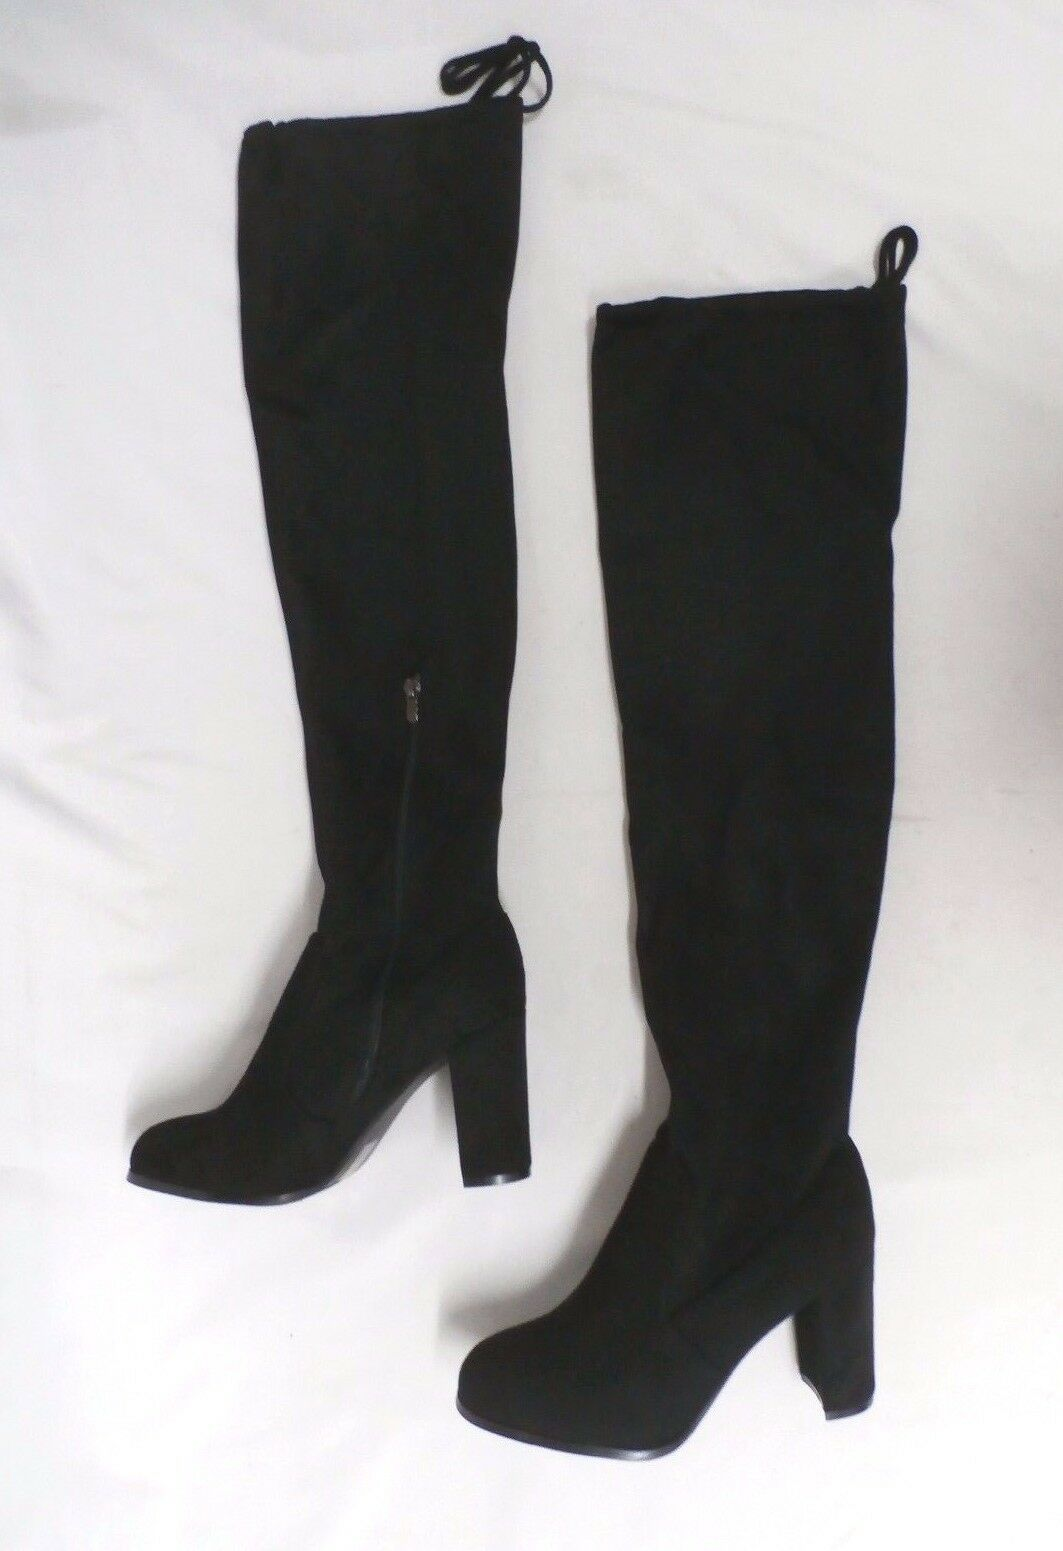 SheSole Women's Thigh High Over The Knee Boots Black TW4 Size EUR:41 US:10